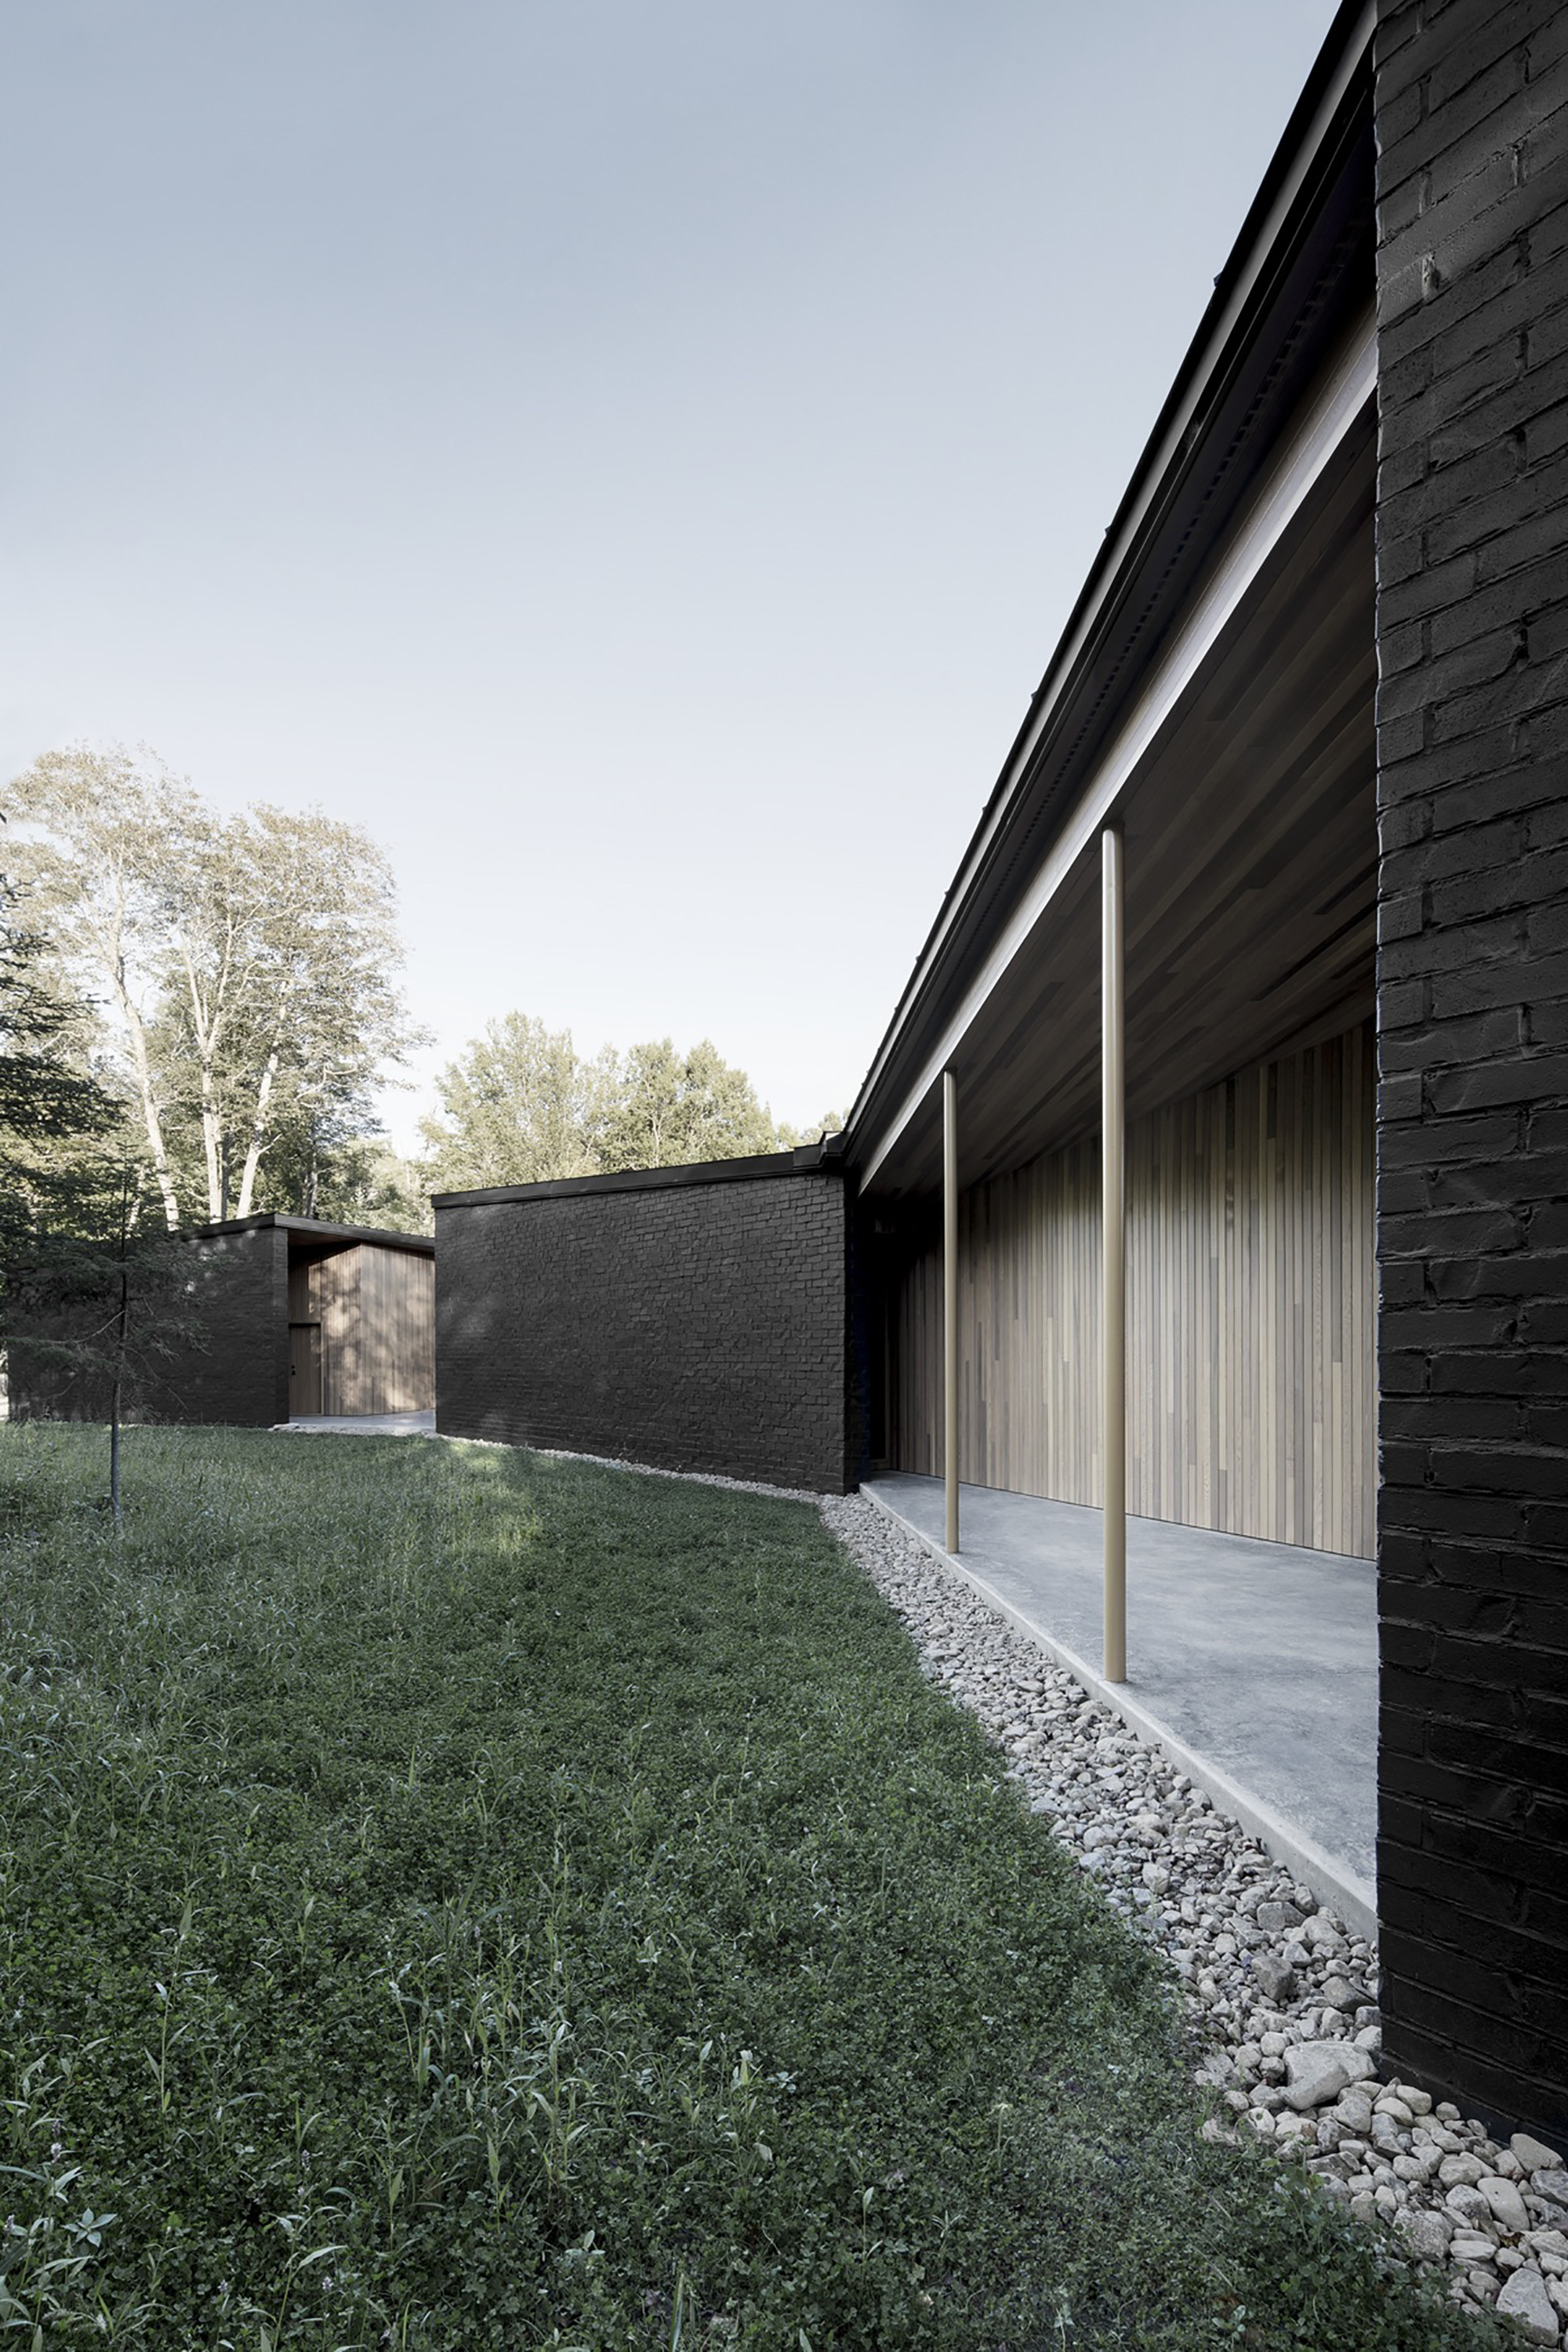 Gallery of Screen House / Alain Carle Architecte - 6